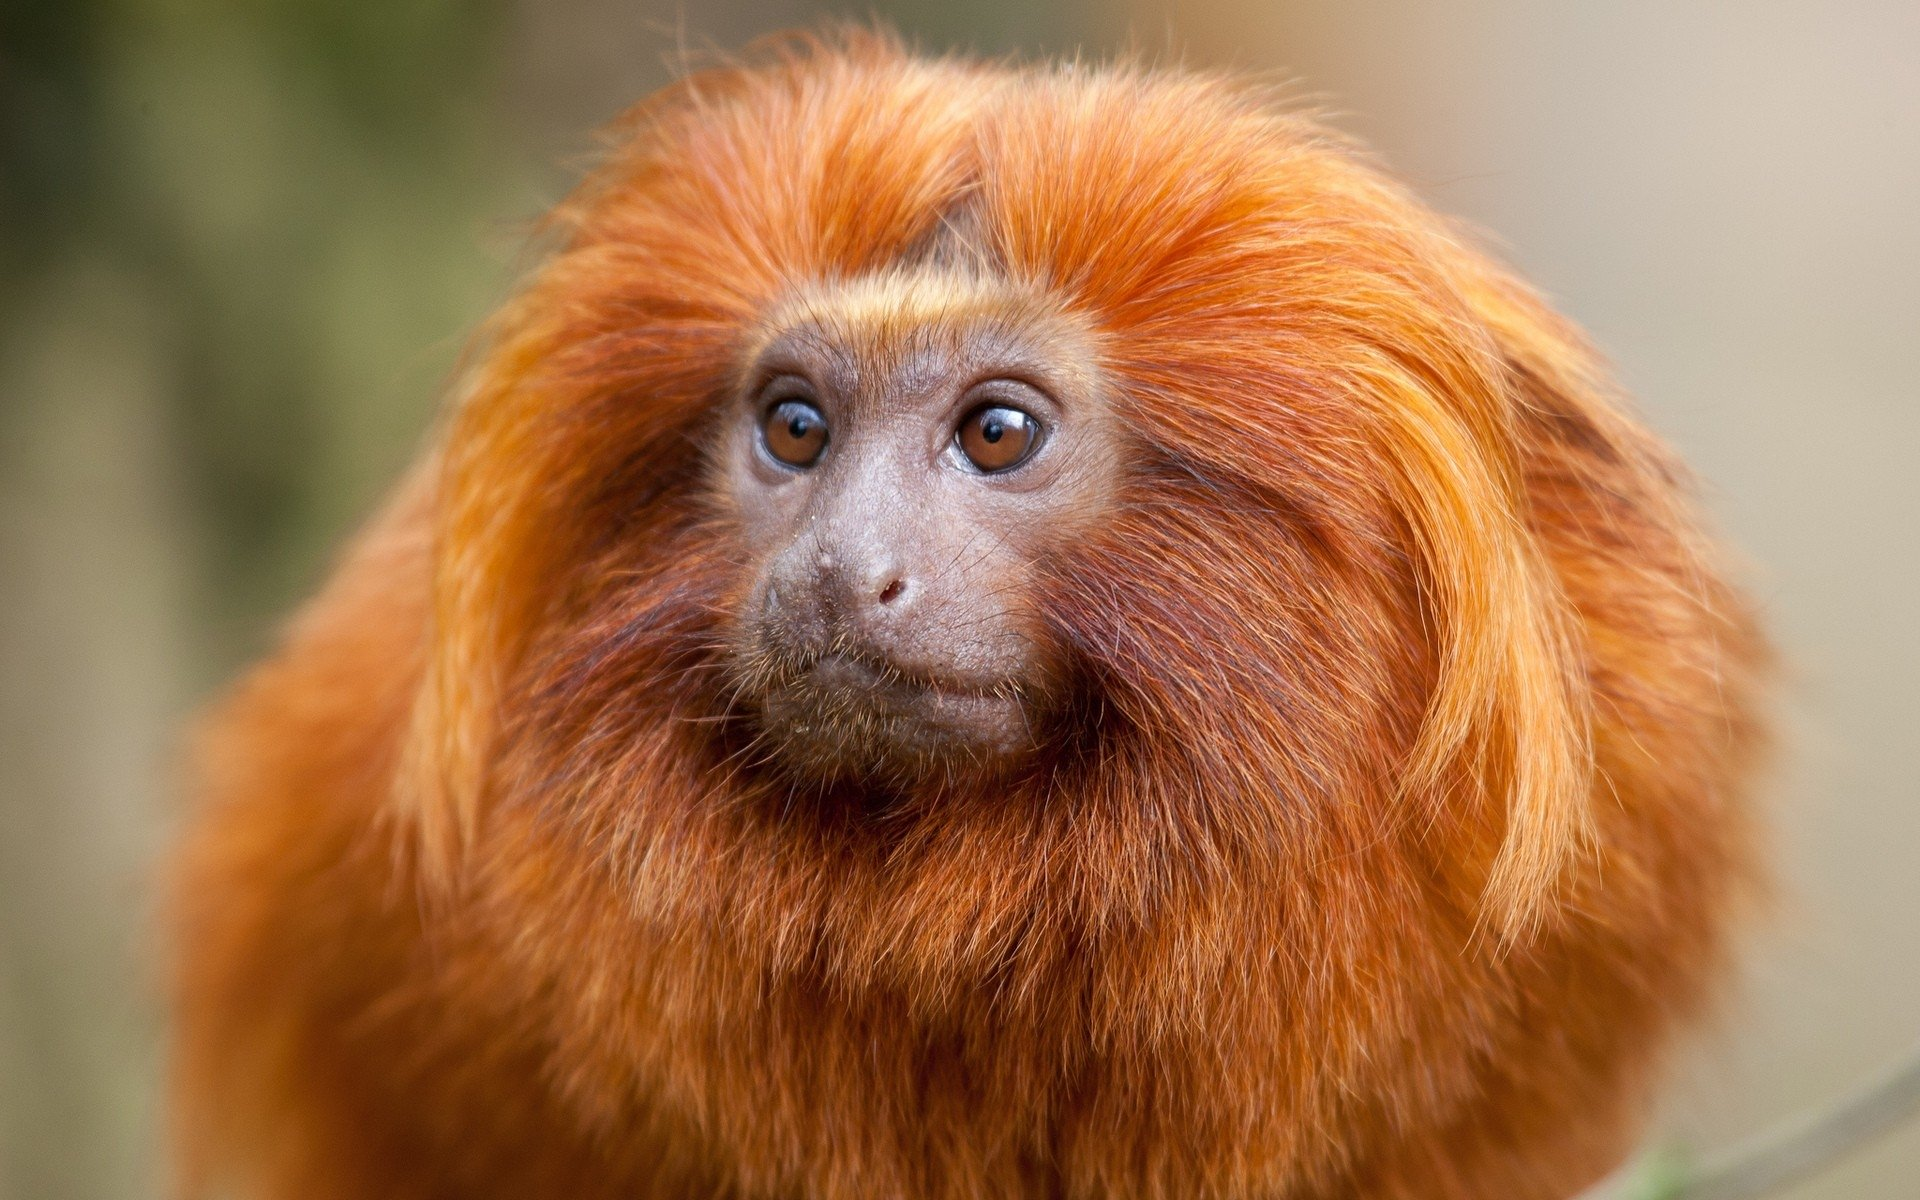 Monkey With A Mane , HD Wallpaper & Backgrounds